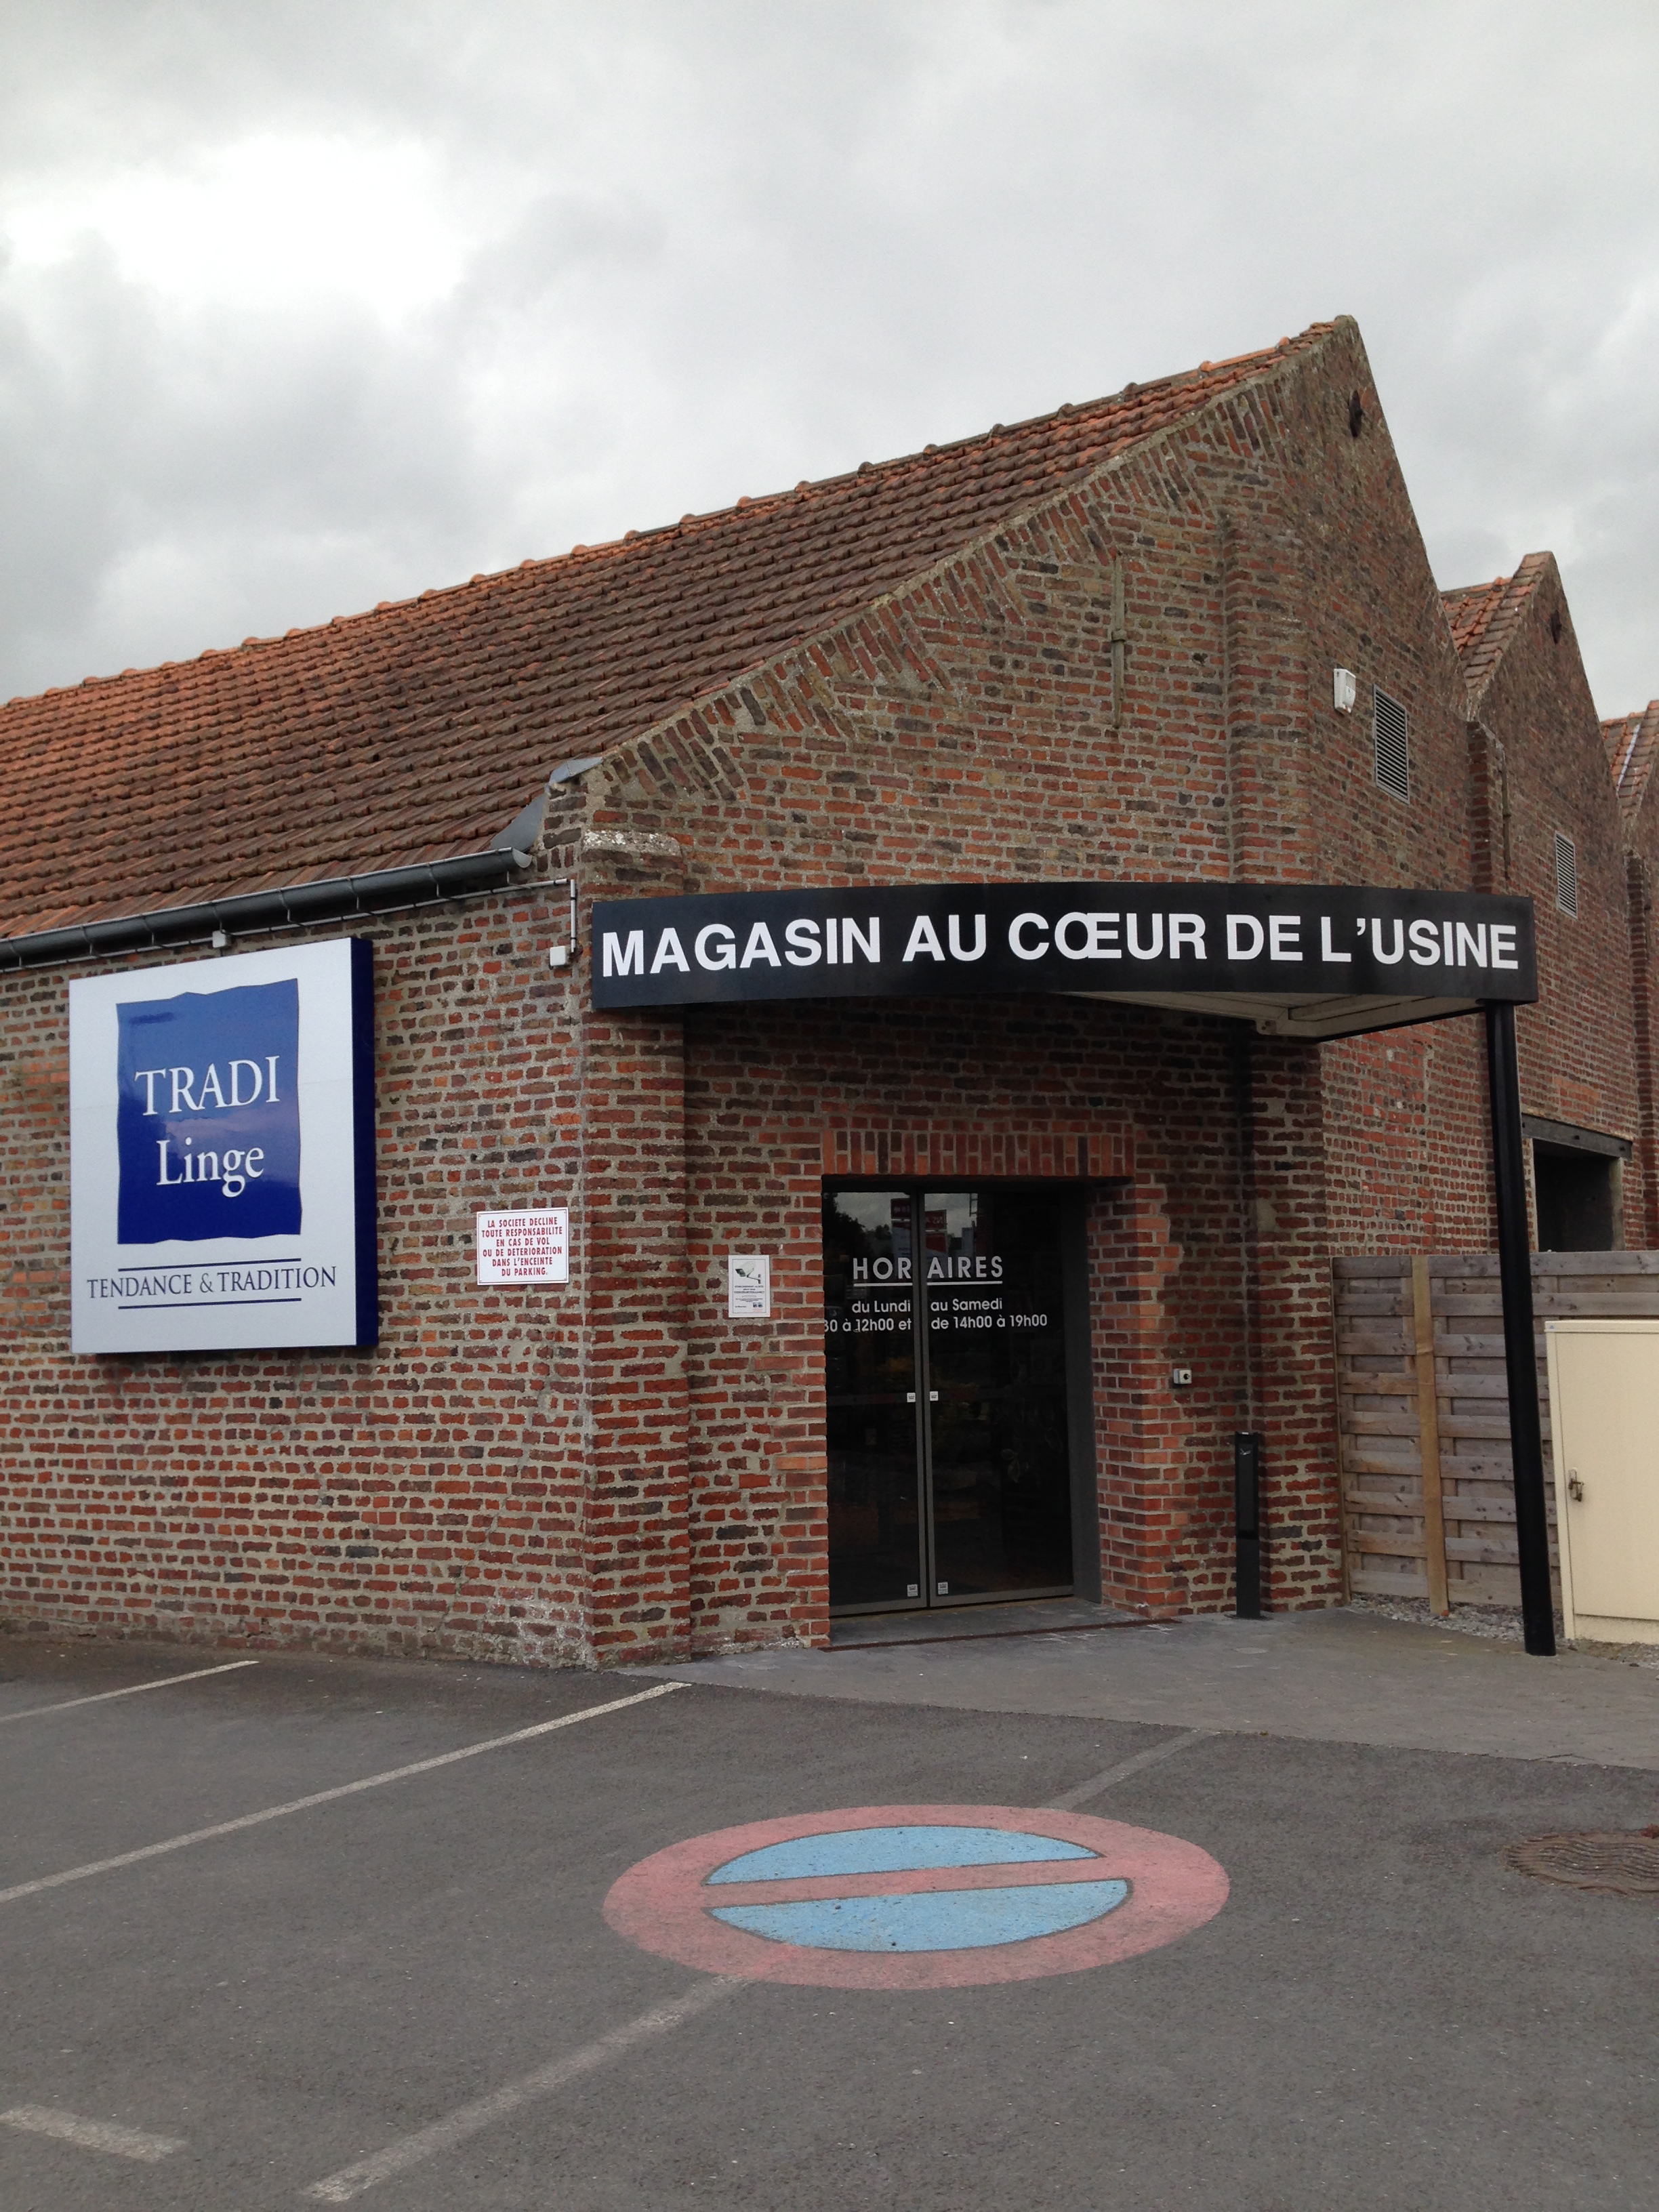 Tradilinge magasin d 39 usine for Magasin d artisanat cambrai